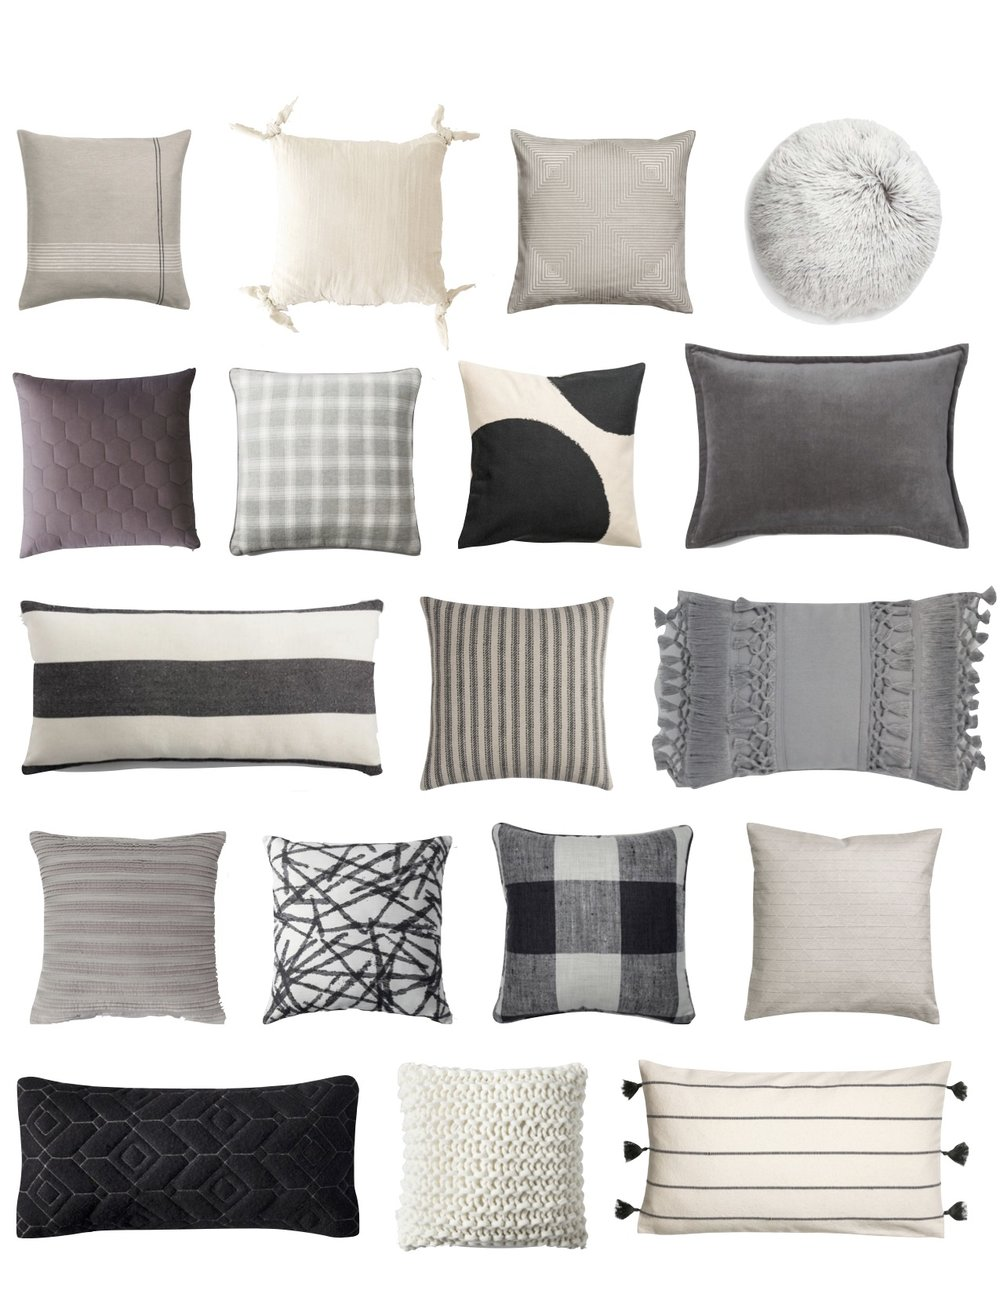 Gray Scale Pillow Under 30.jpg